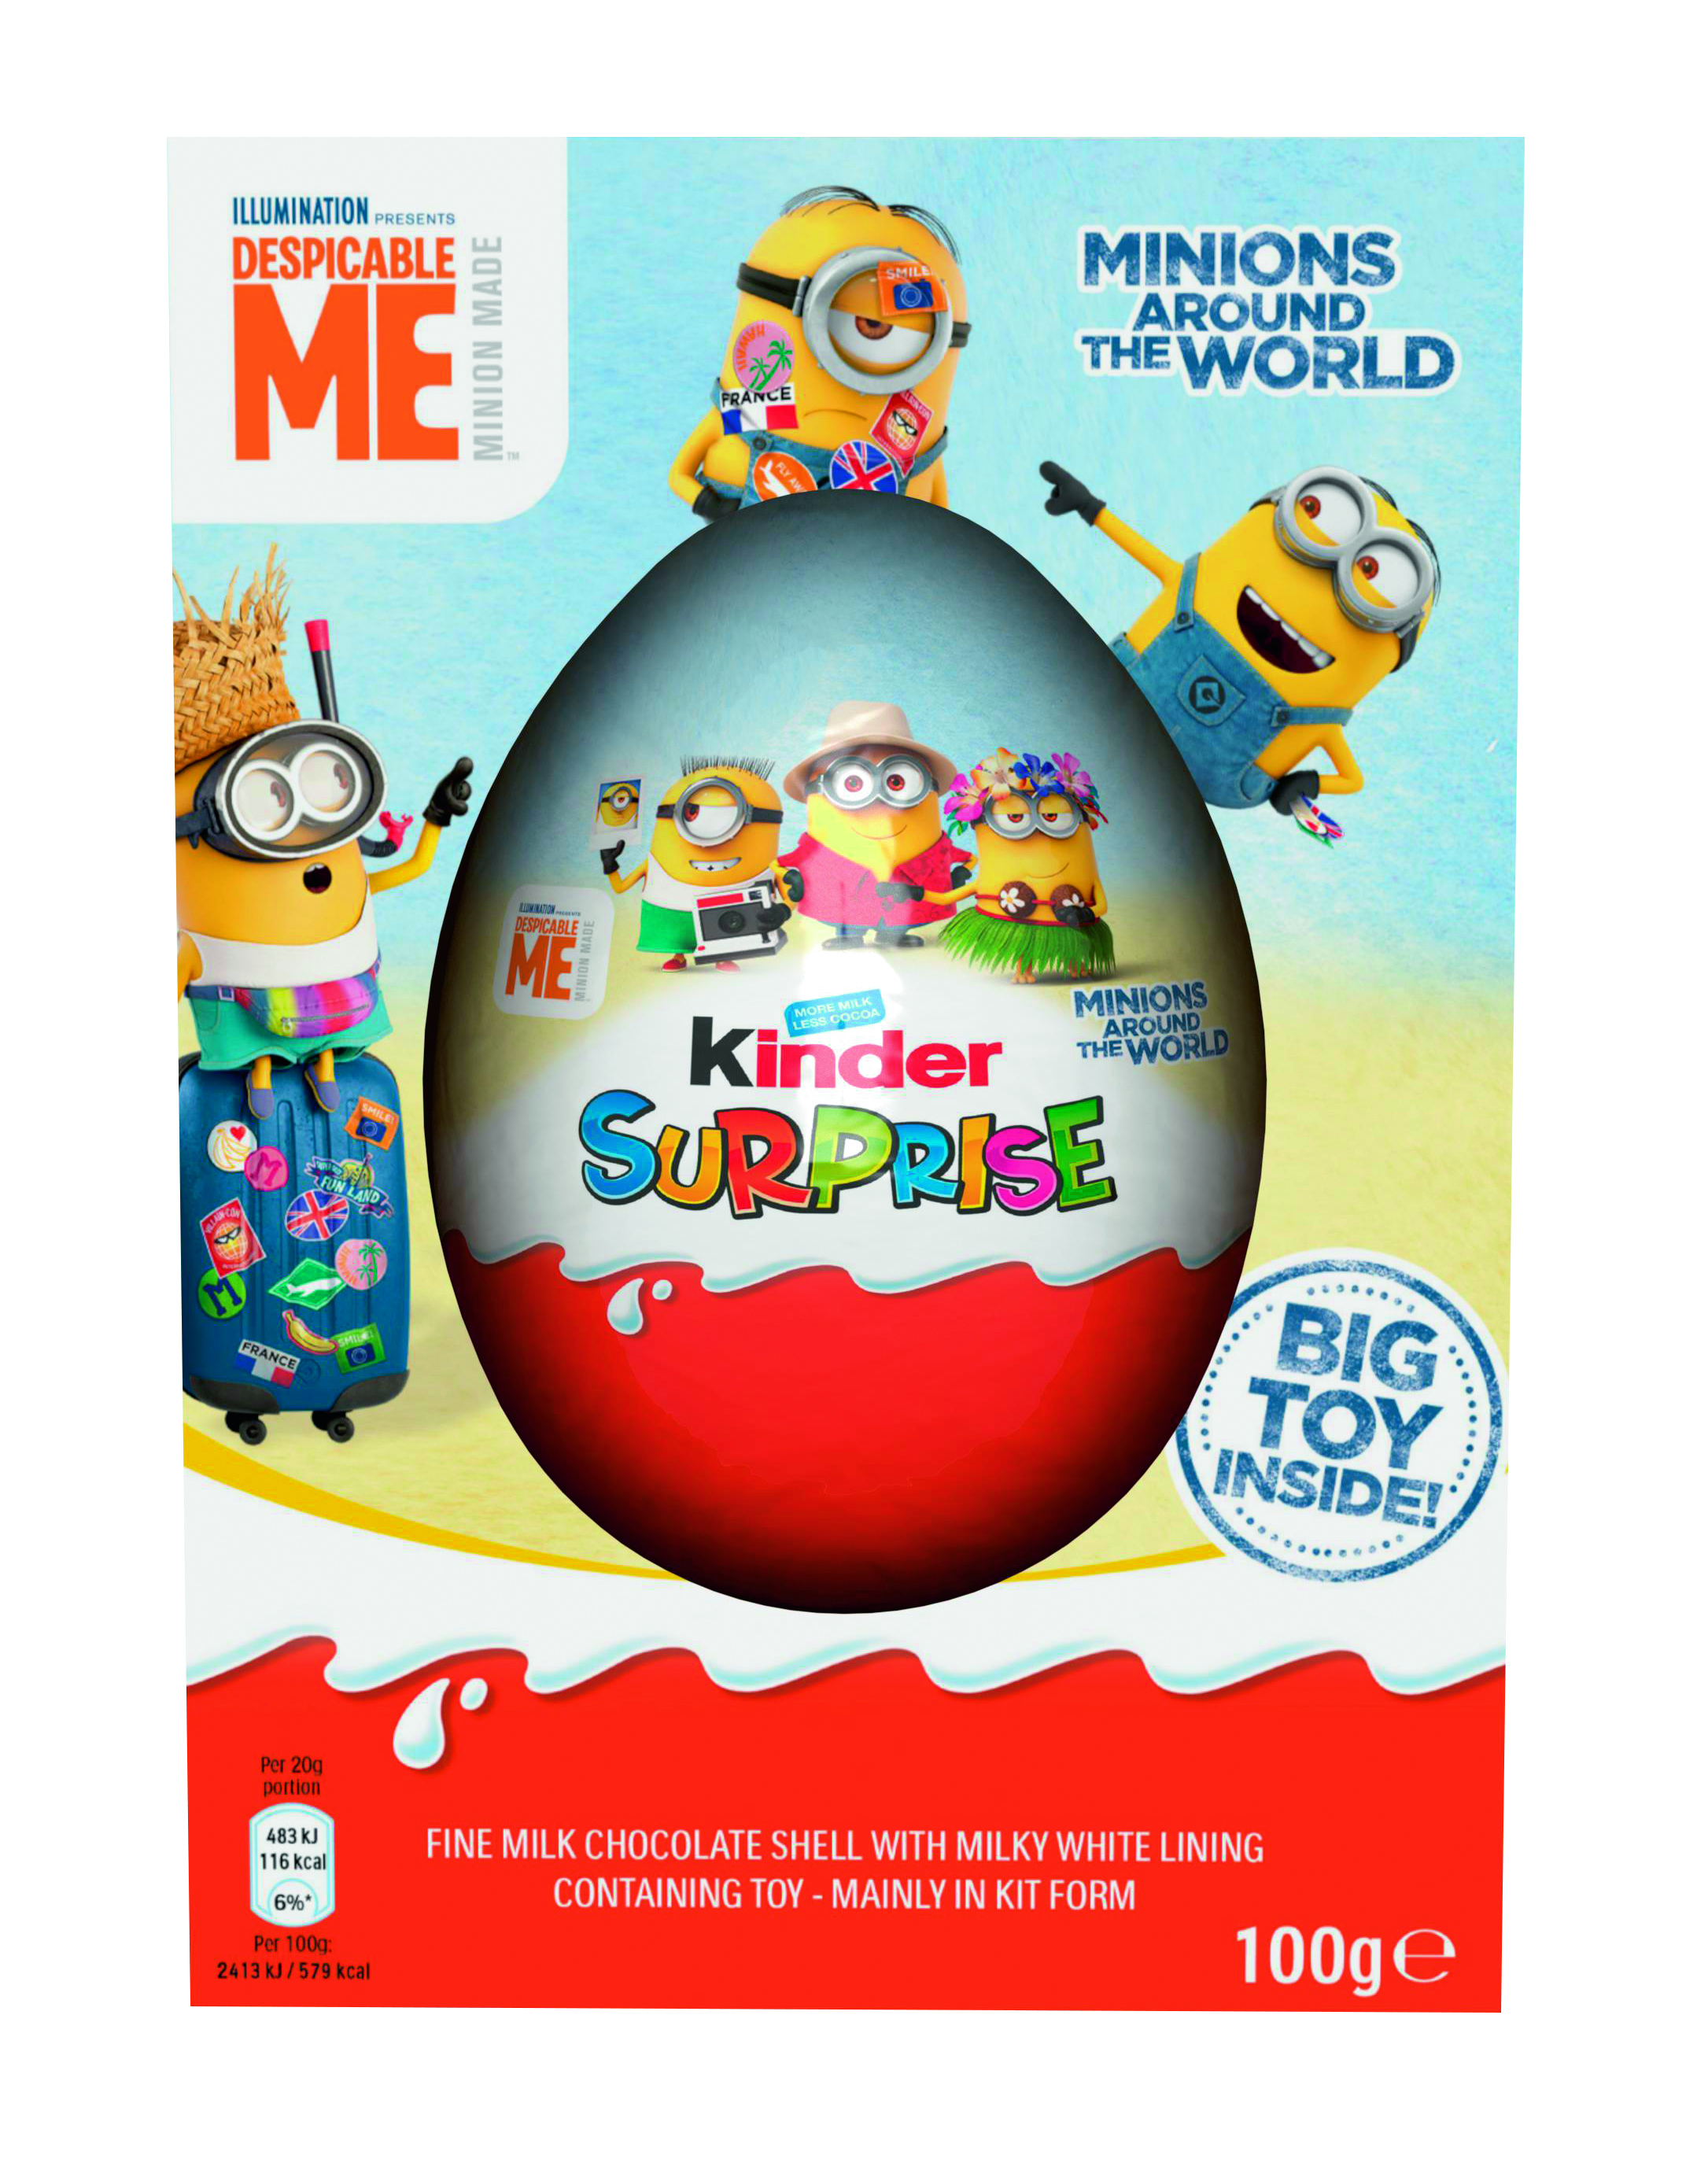 Kinder Maxi Big Pack You Can Now Buy Giant Kinder Surprise Eggs With Powerpuff